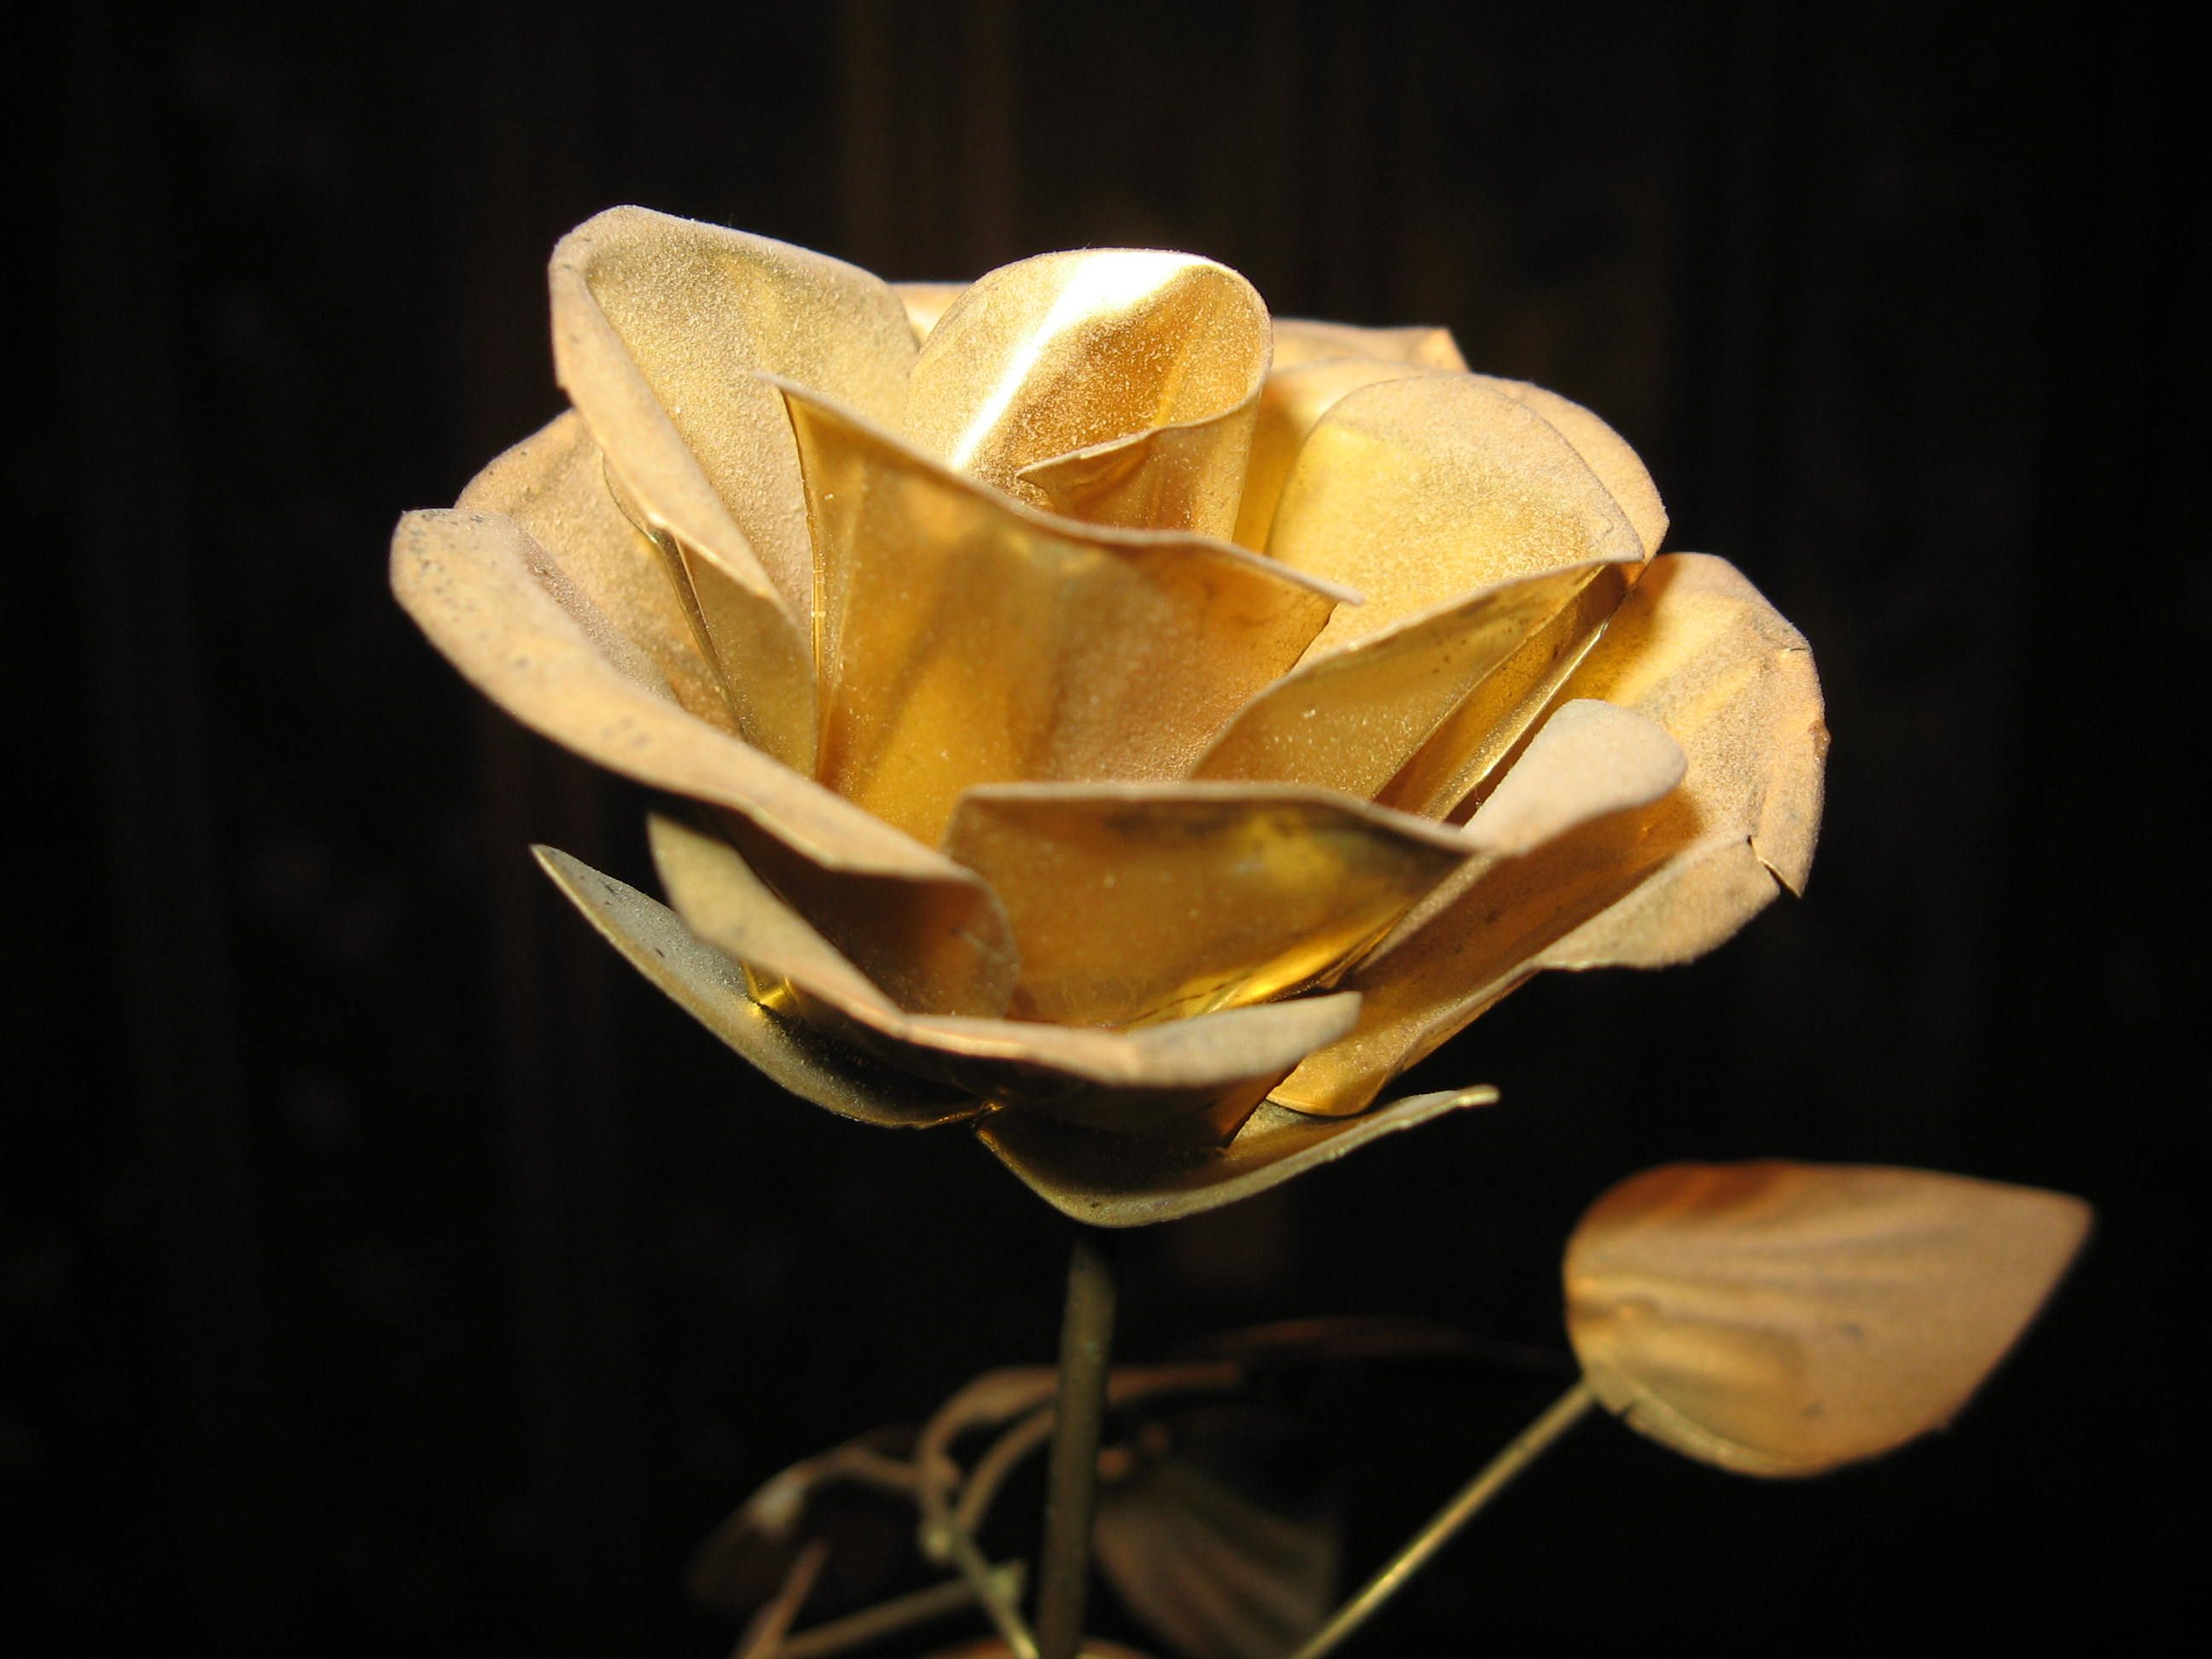 Golden Rose HD Image Of The Or Gold Flower